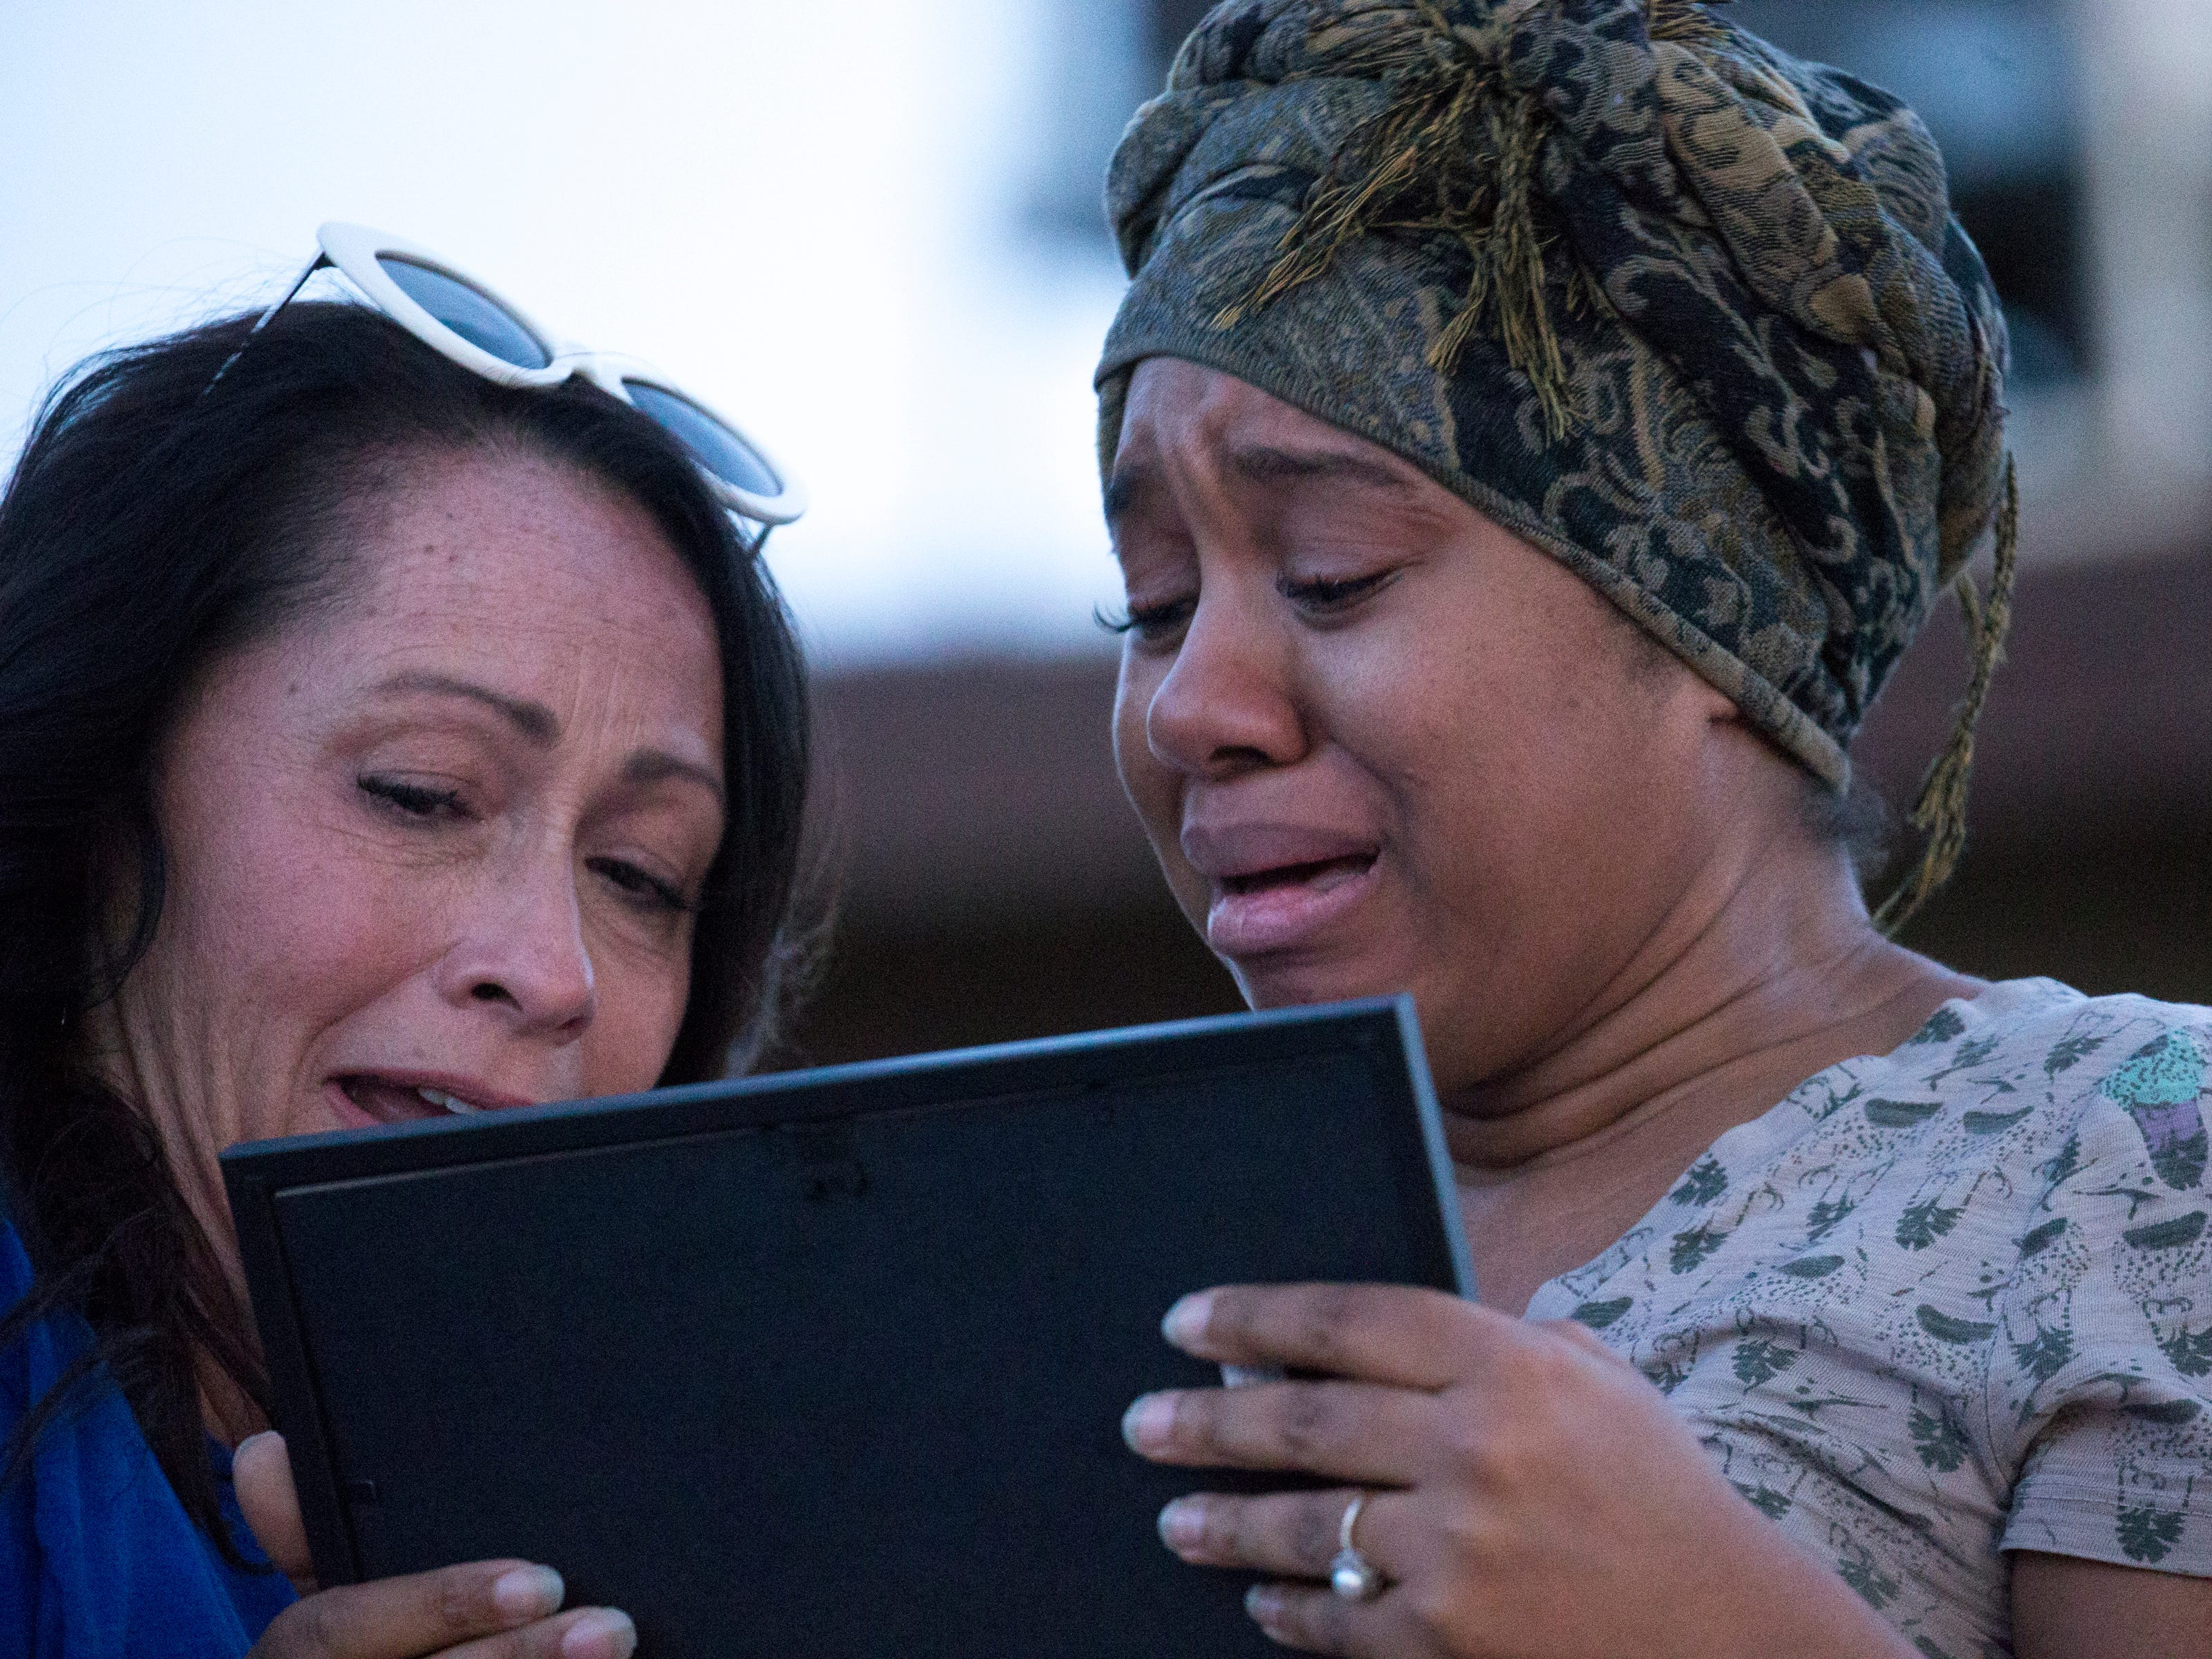 Taniesha Brown (right, Summer's mom) is overcome with emotion after Rebecka Johnson (left, Summer's 5th grade teacher) gave her Summer's last art assignment during a vigil for Summer Bell Brown on April 5, 2019. Summer was shot in the driveway of her home and later died from her injuries in a suspected road-rage incident.